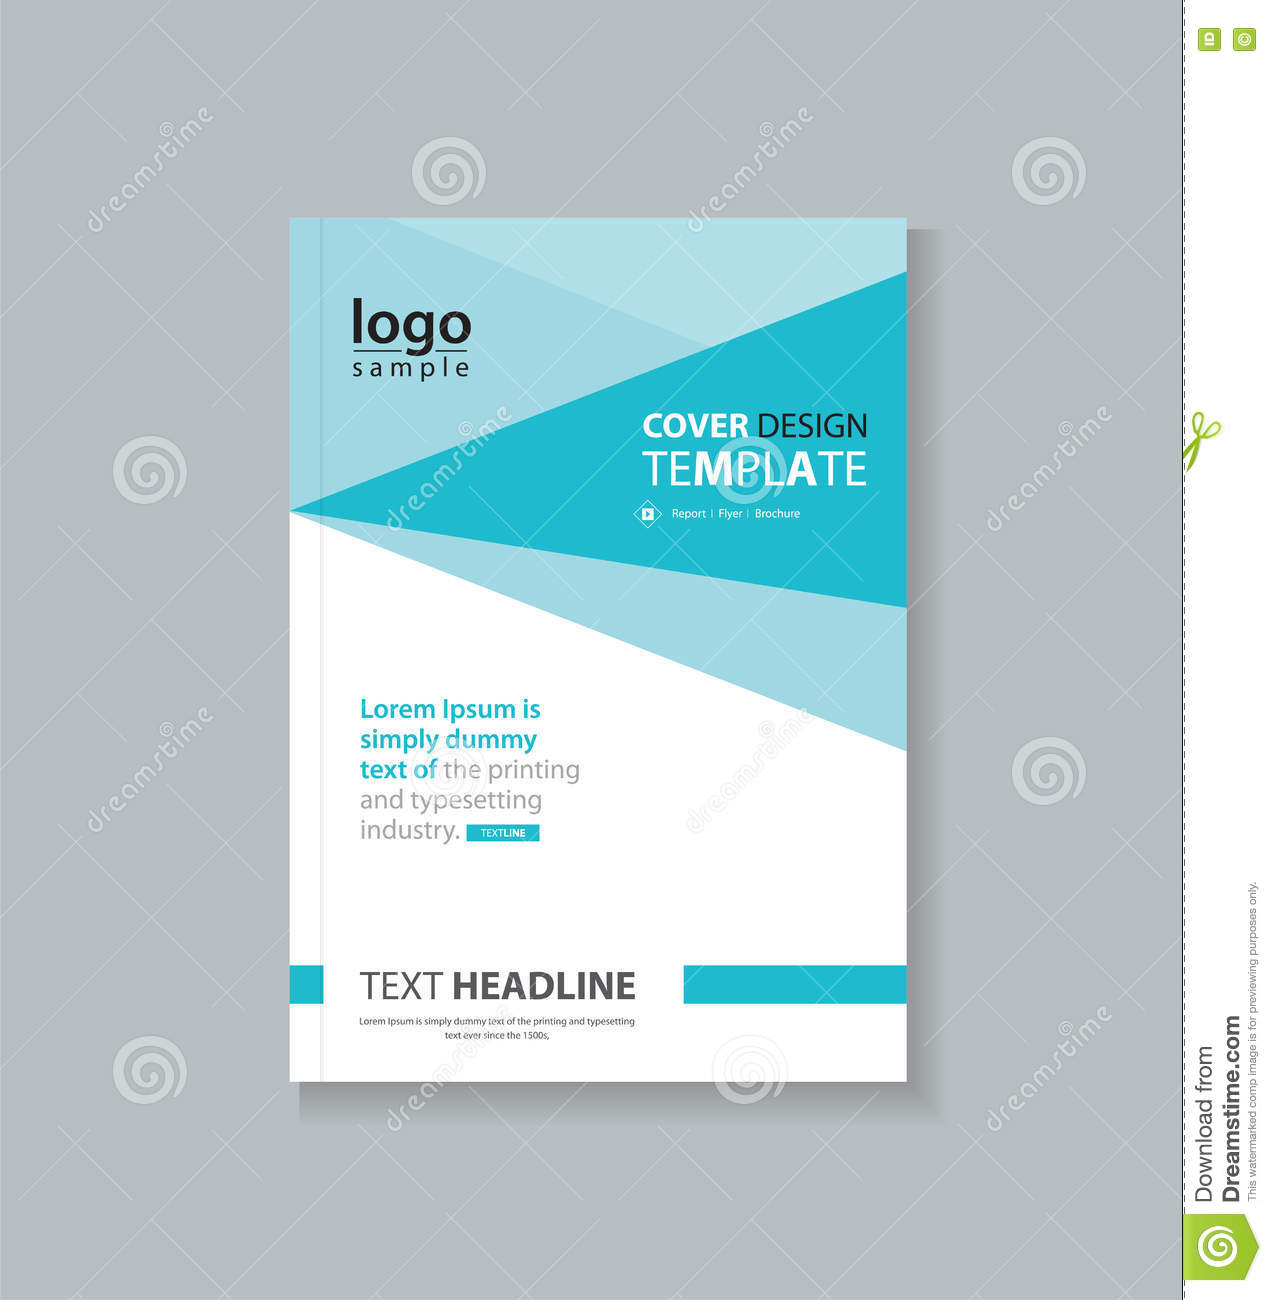 business cover design template brochure annual report flyer business cover design template brochure annual report flyer